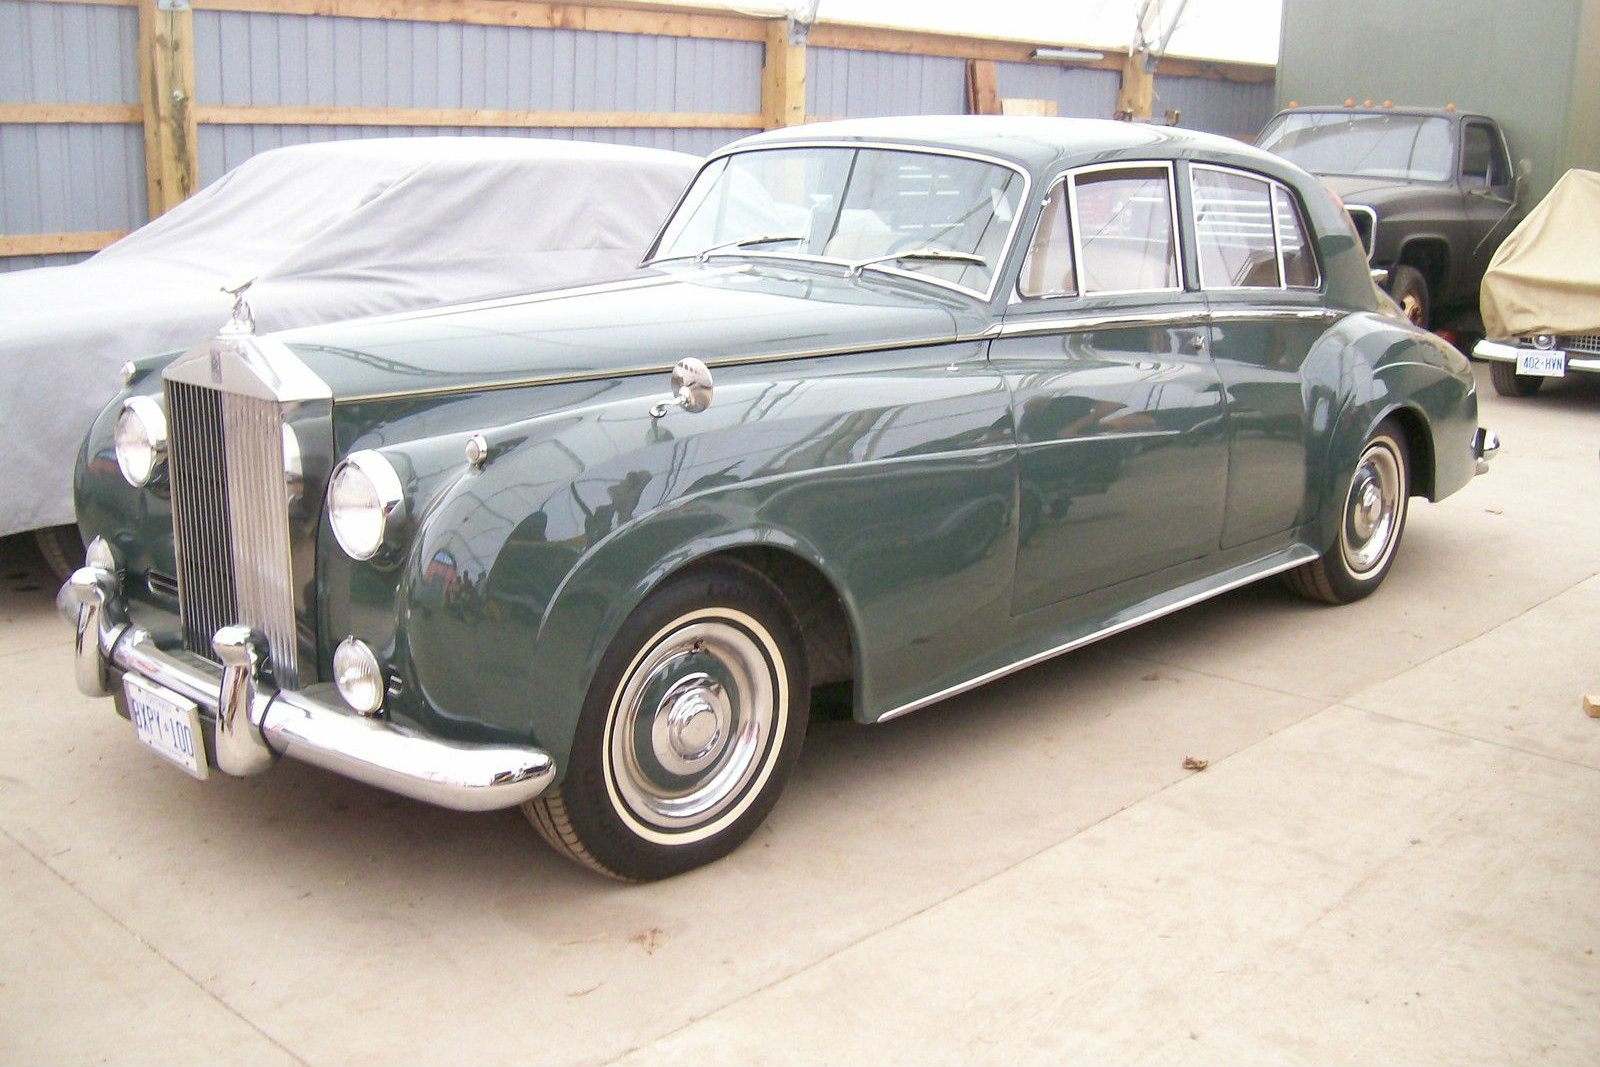 Hondas For Sale >> Riding On A Cloud? 1958 Rolls Royce Silver Cloud